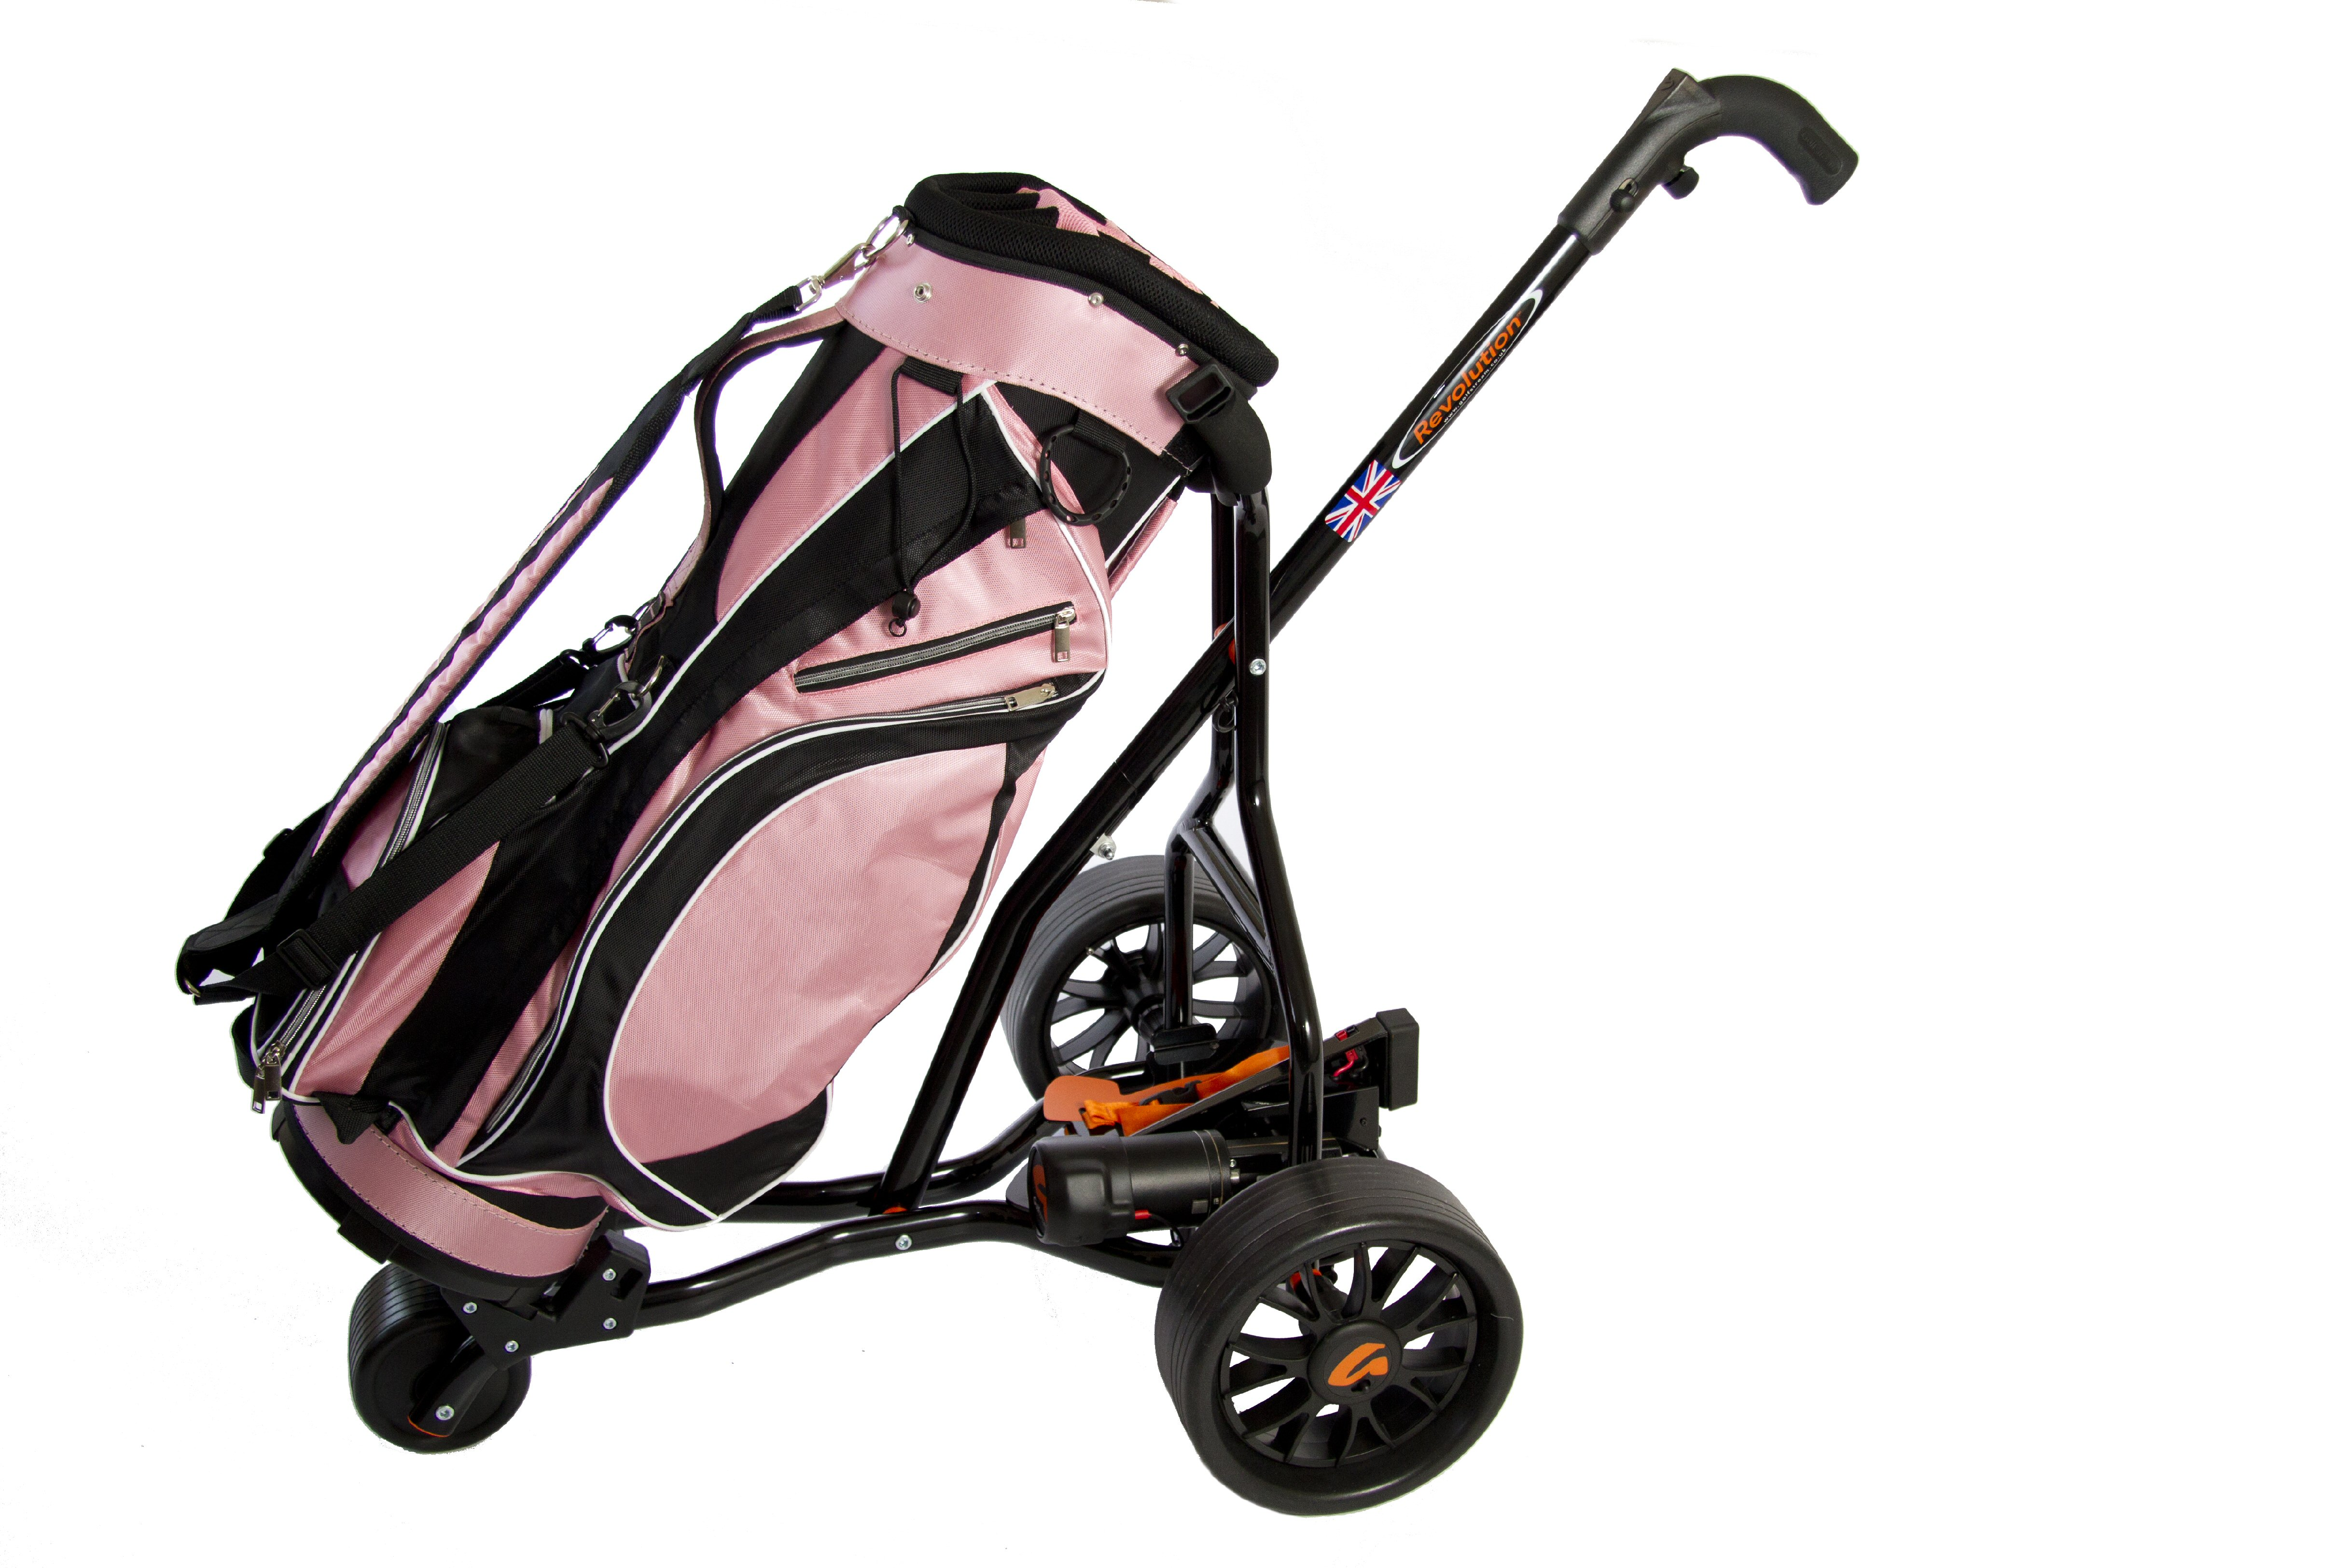 Golf Company launches new lightweight ladies golf bag ... - ClipArt ...